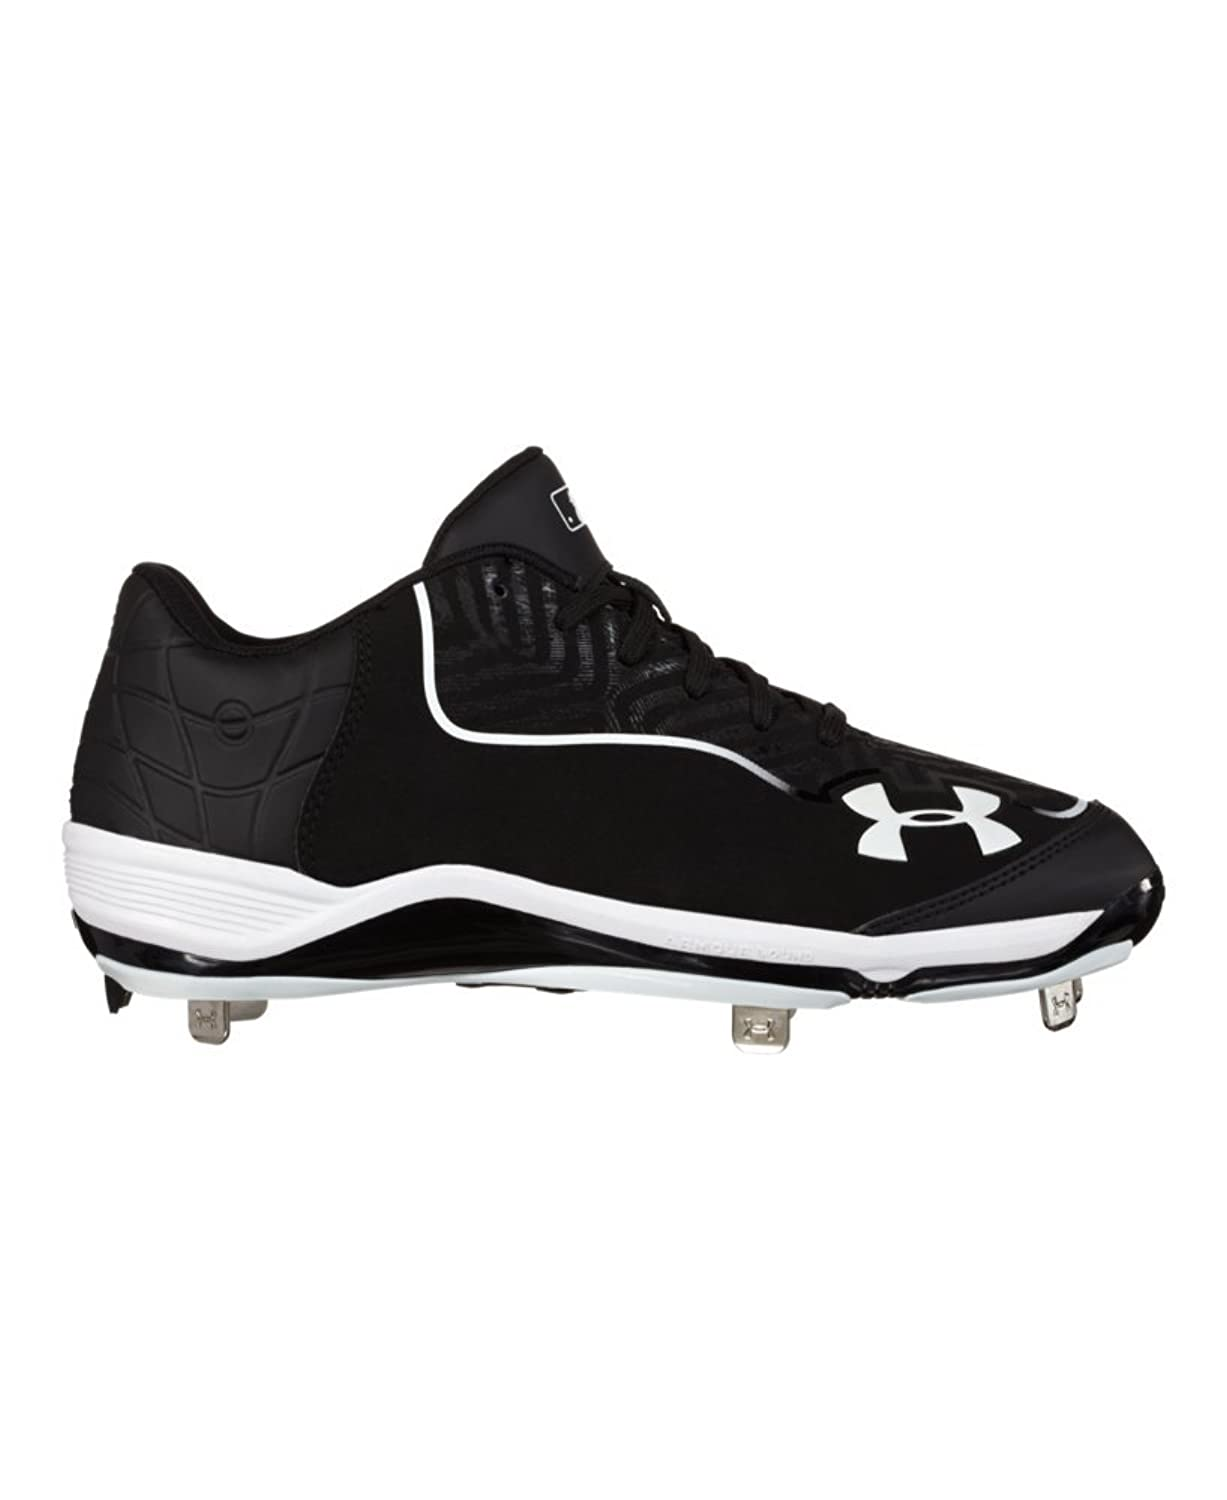 New Mens Under Armour Ignite Mid ST CC Baseball Cleats Royal White Sz 13 M